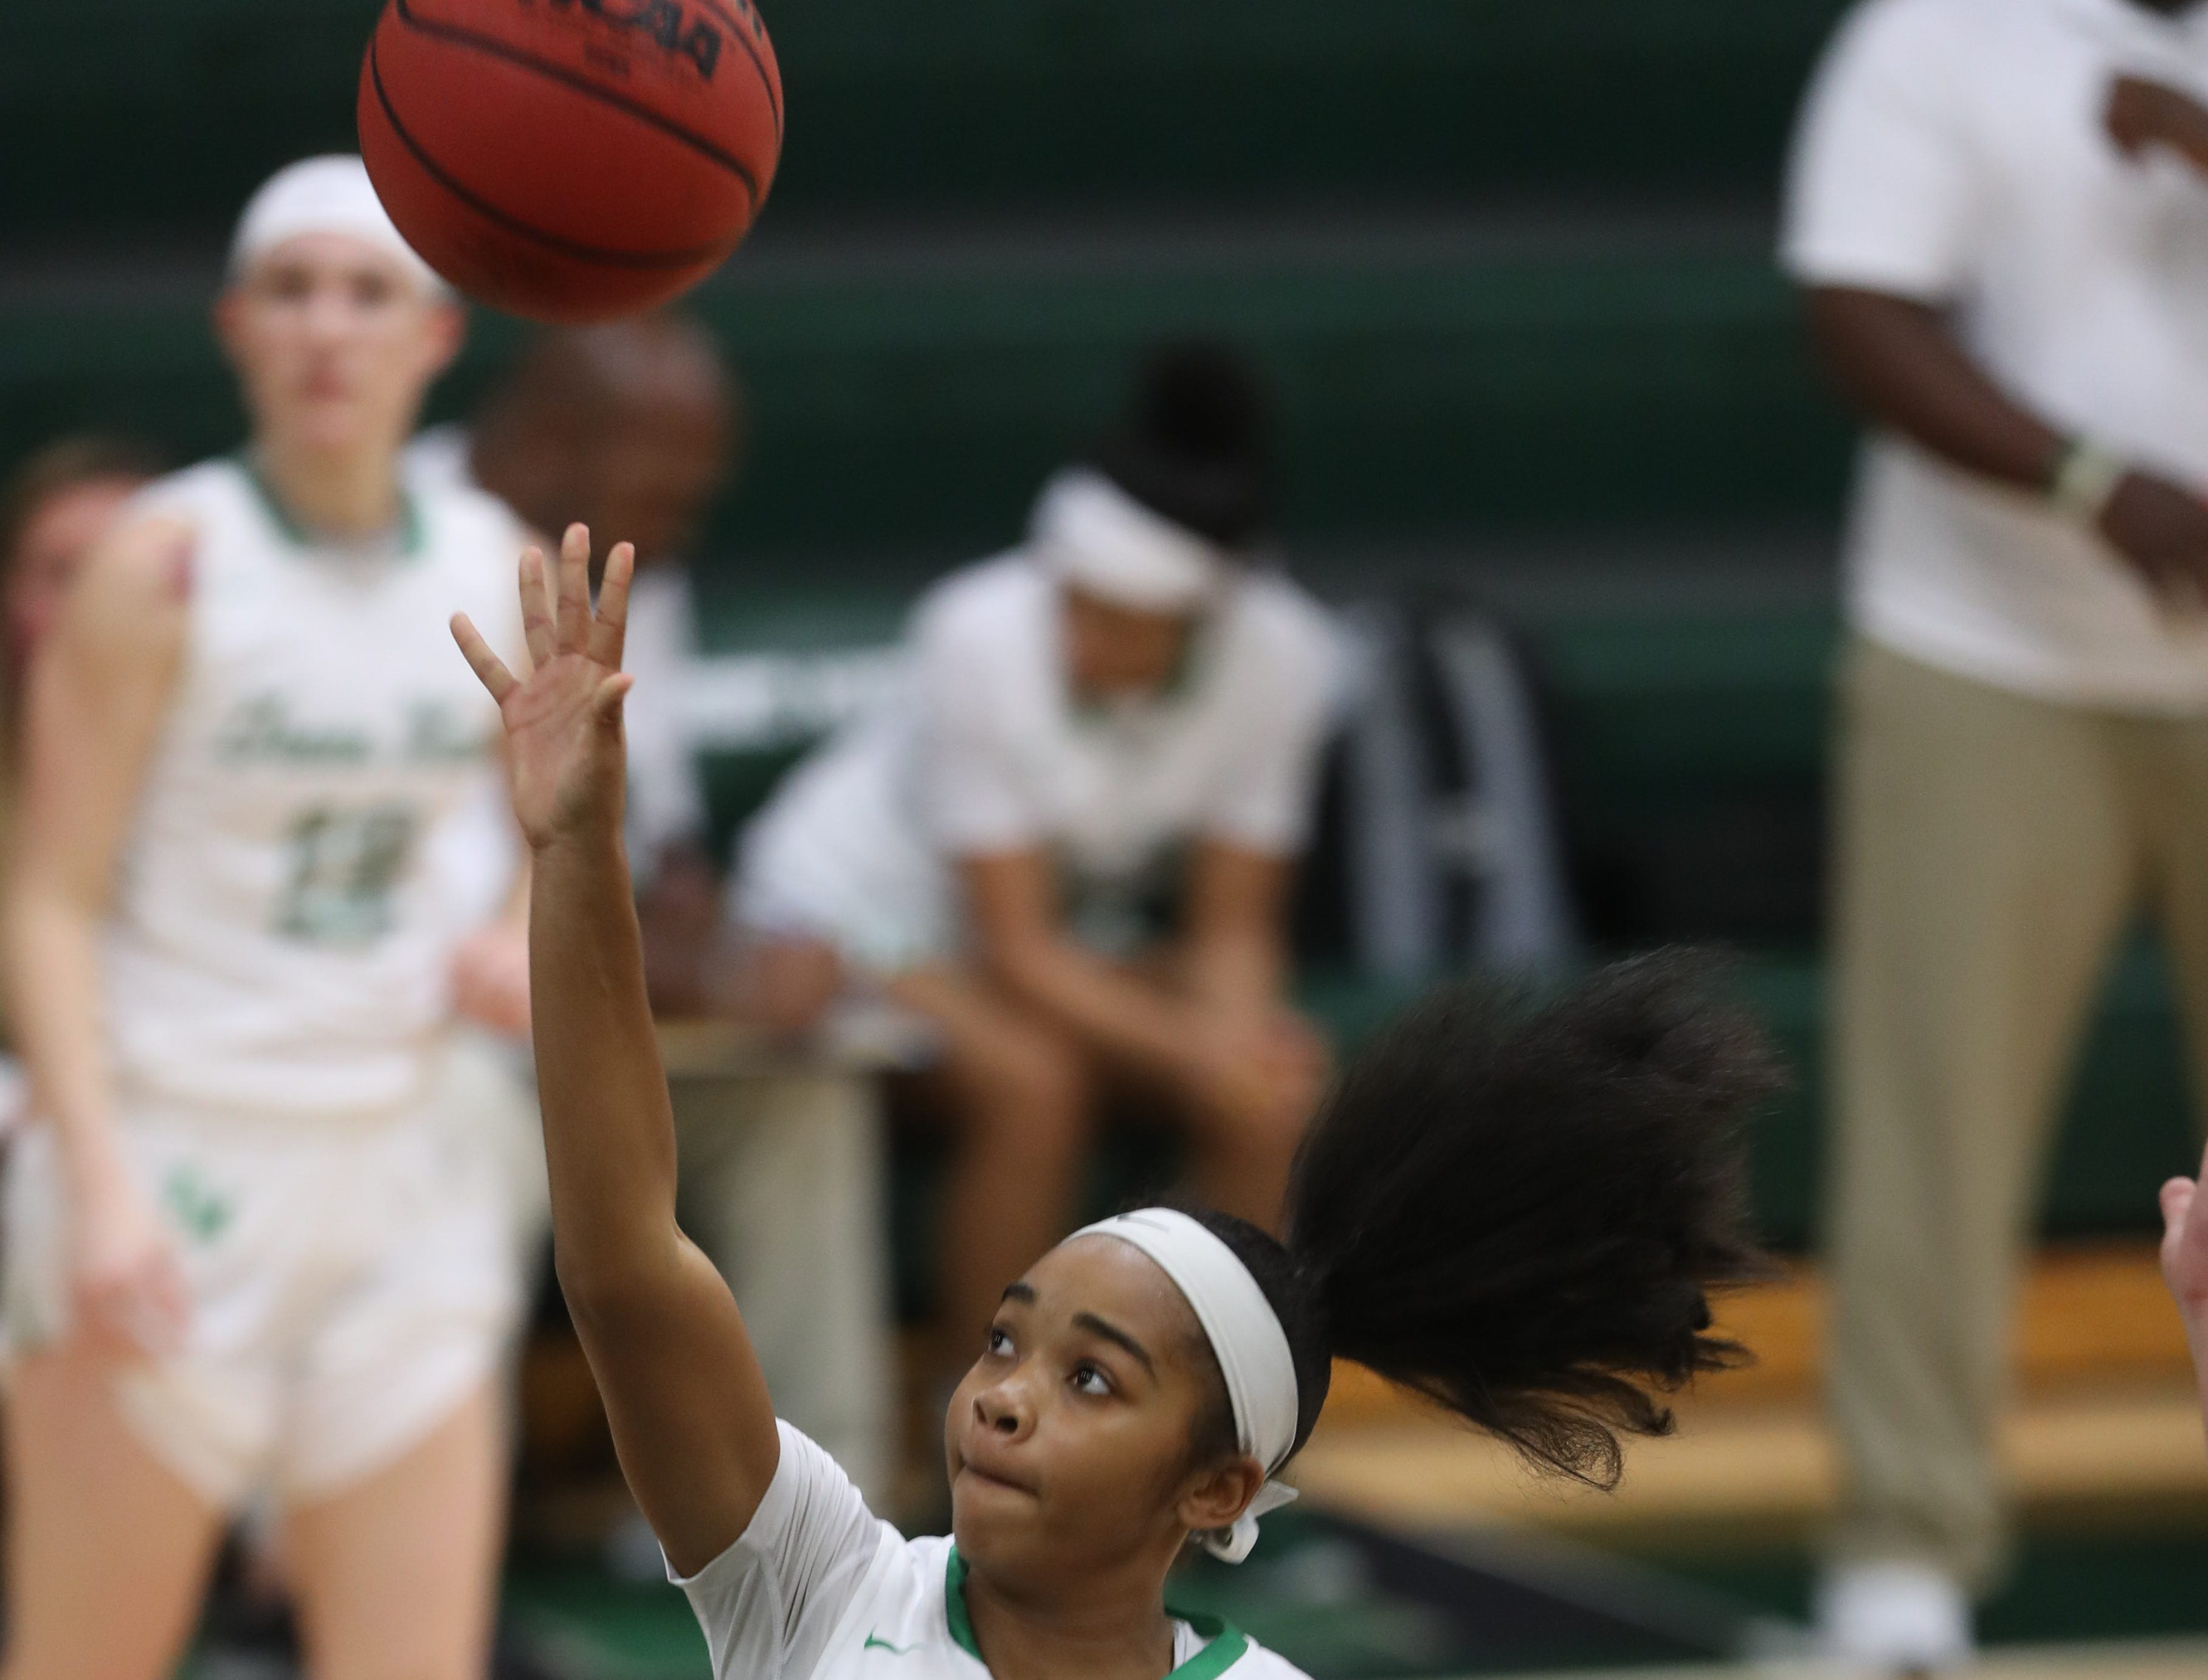 Game action between Gulf Coast High School and Fort Myers on Thursday in Fort Myers. Gulf Coast beat Fort Myers 71-67.